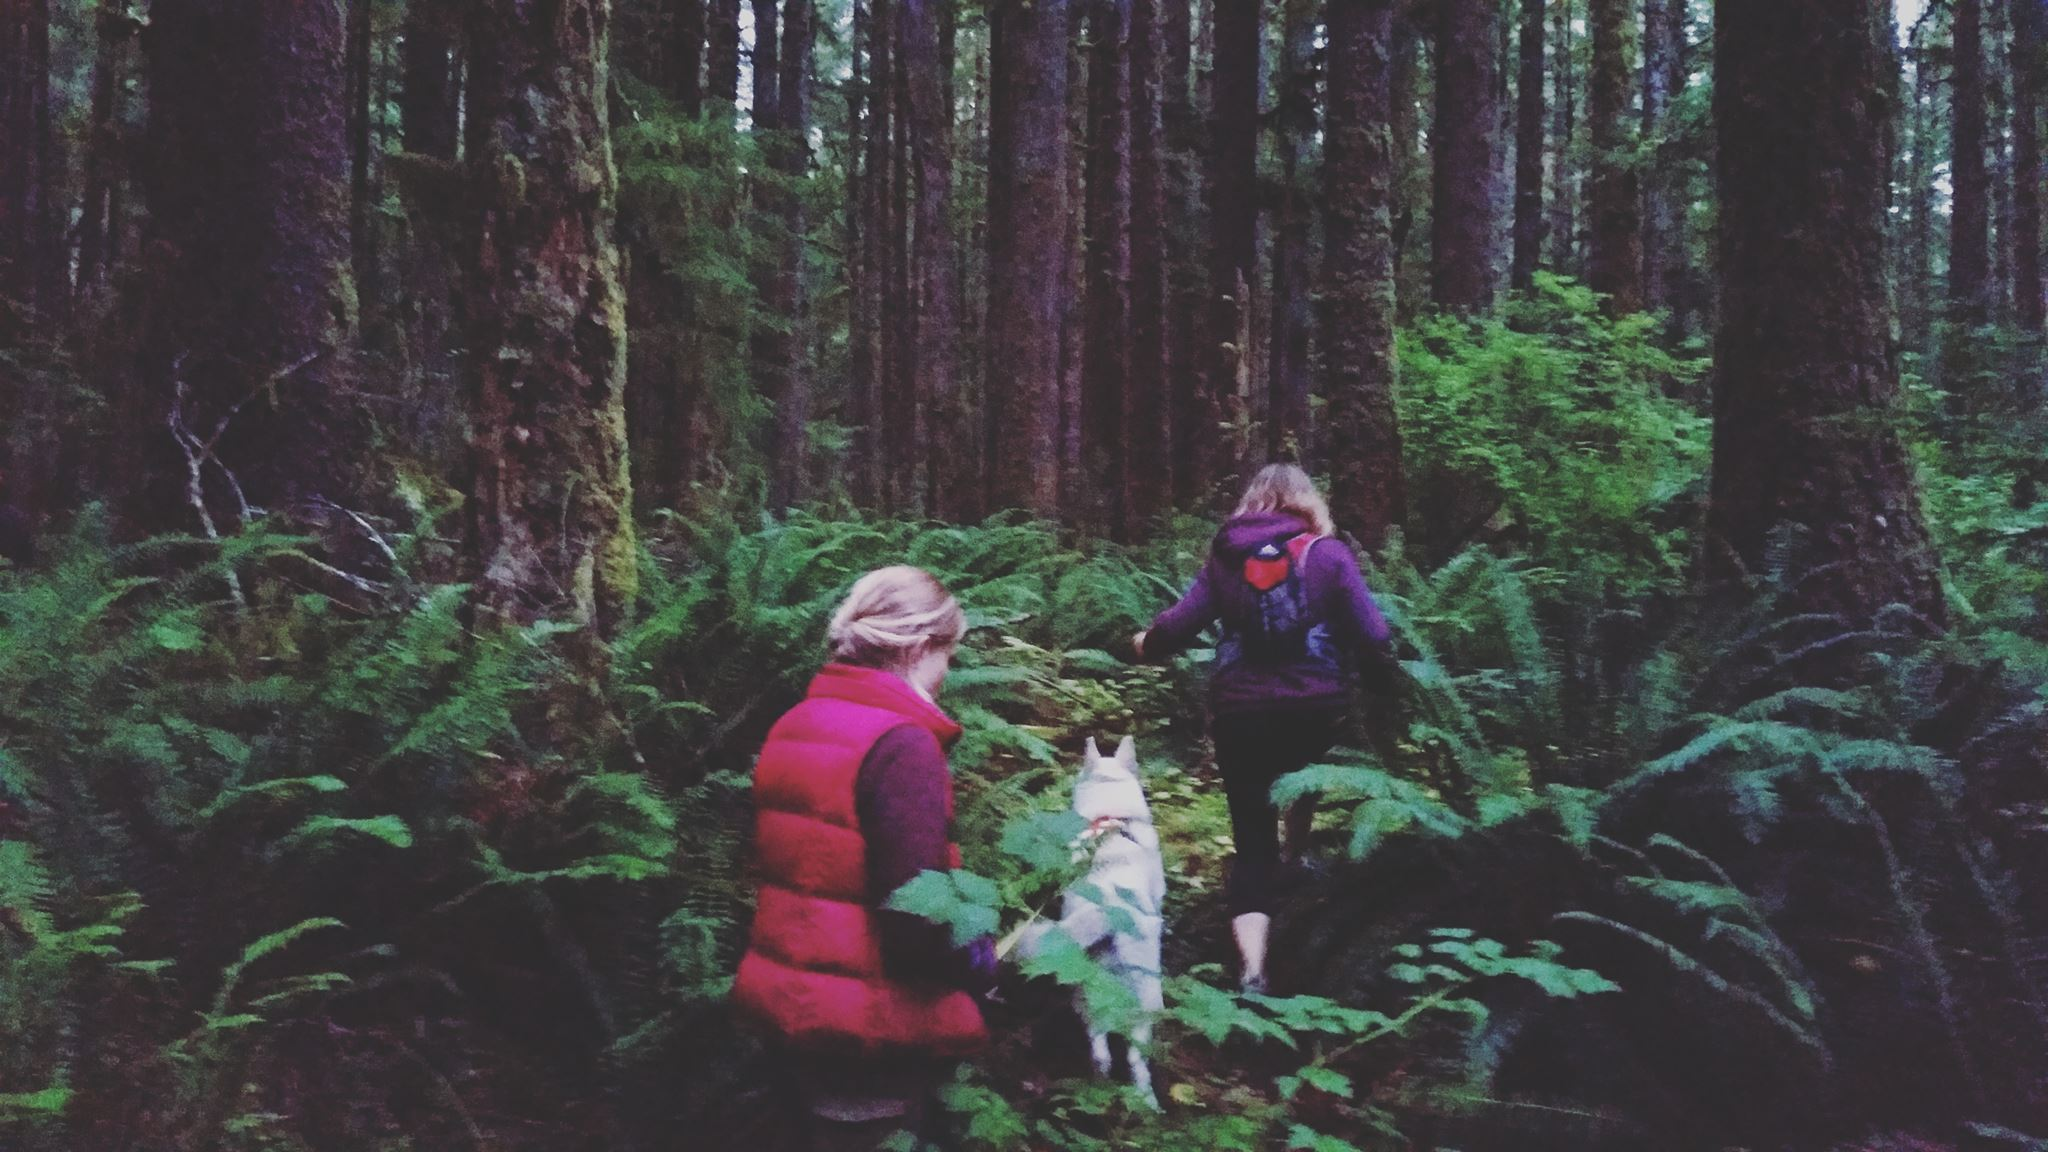 alissa katie and brite members the we are wildness rewilding their lives while walking in the woods